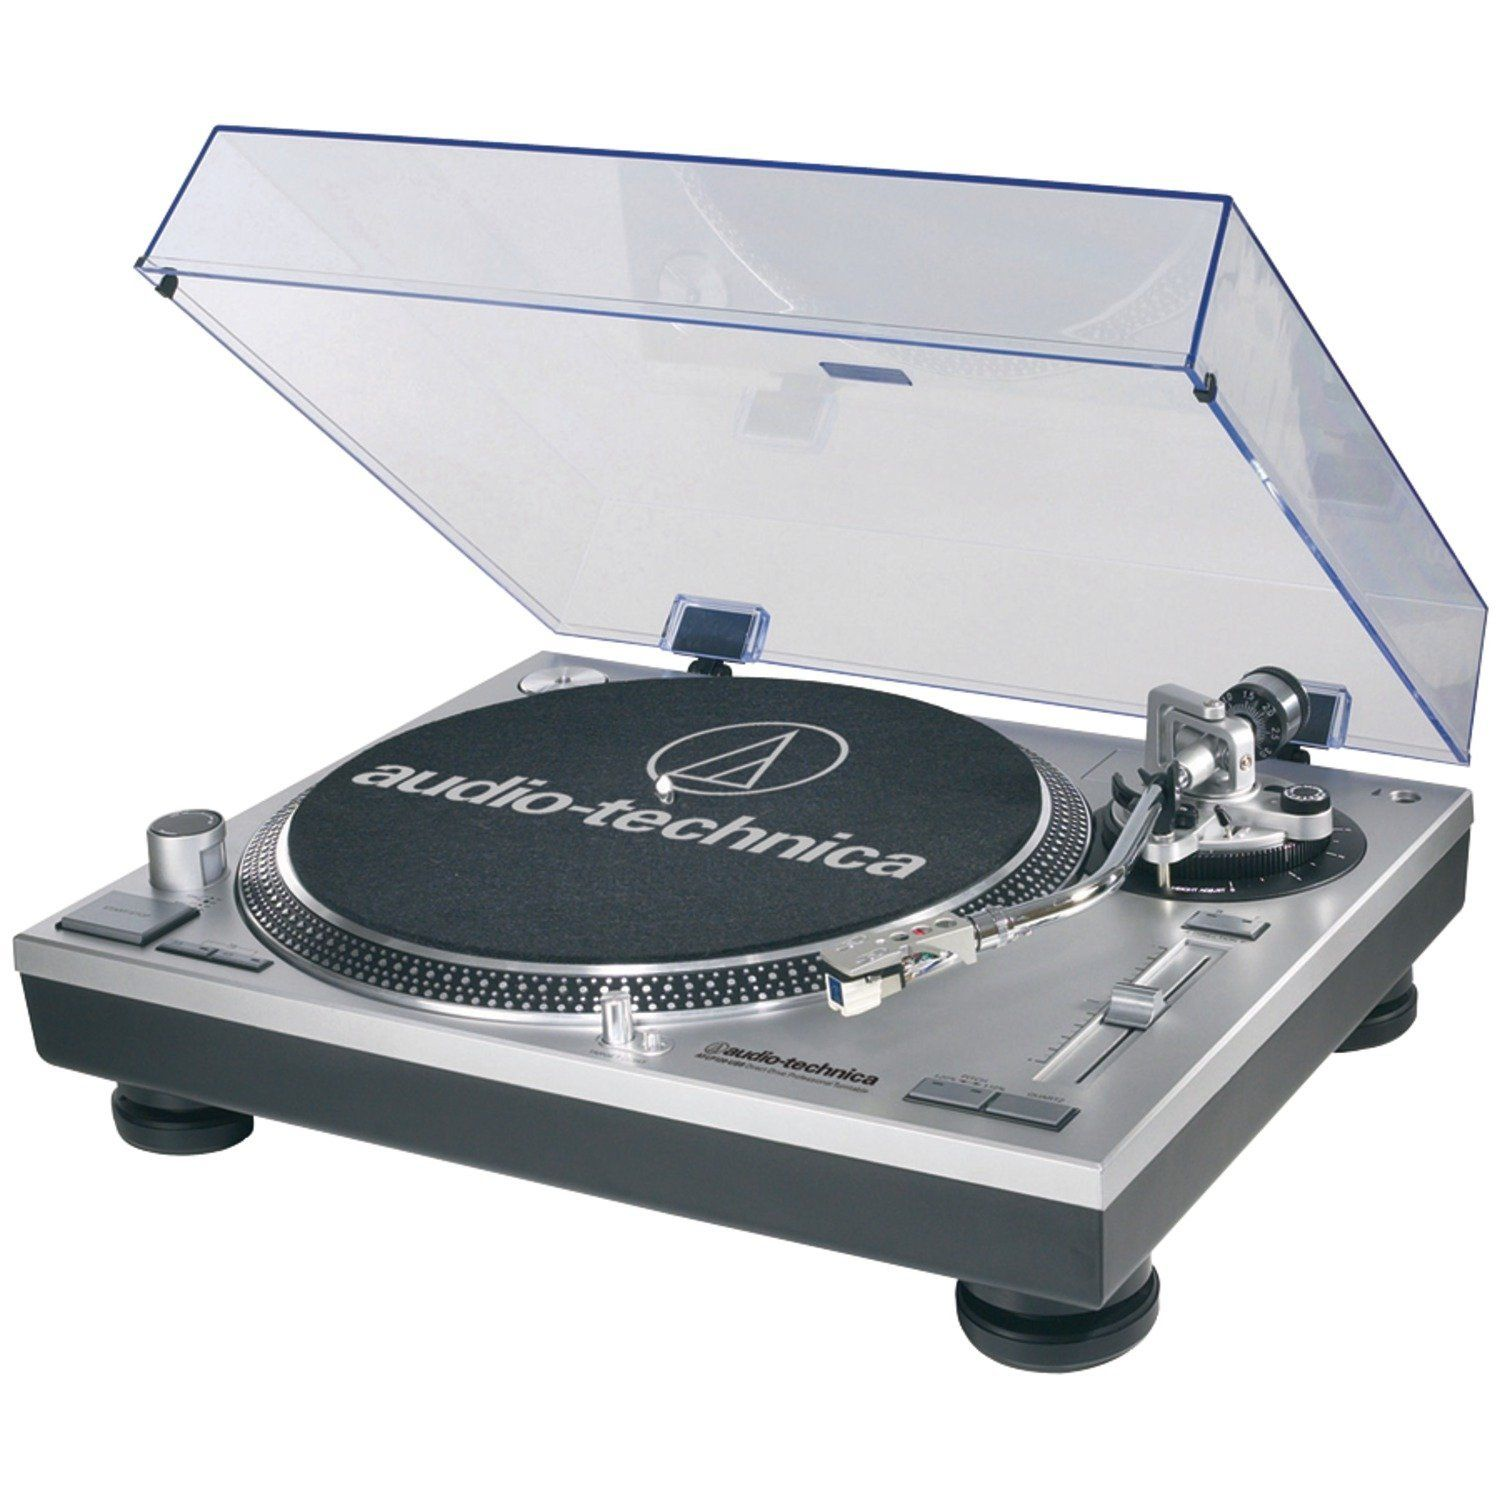 Amazon Com Audio Technica At Lp120 Usb Direct Drive Professional Turntable In Silver Electronics Audio Technica Turntable Usb Turntable Stereo Turntable